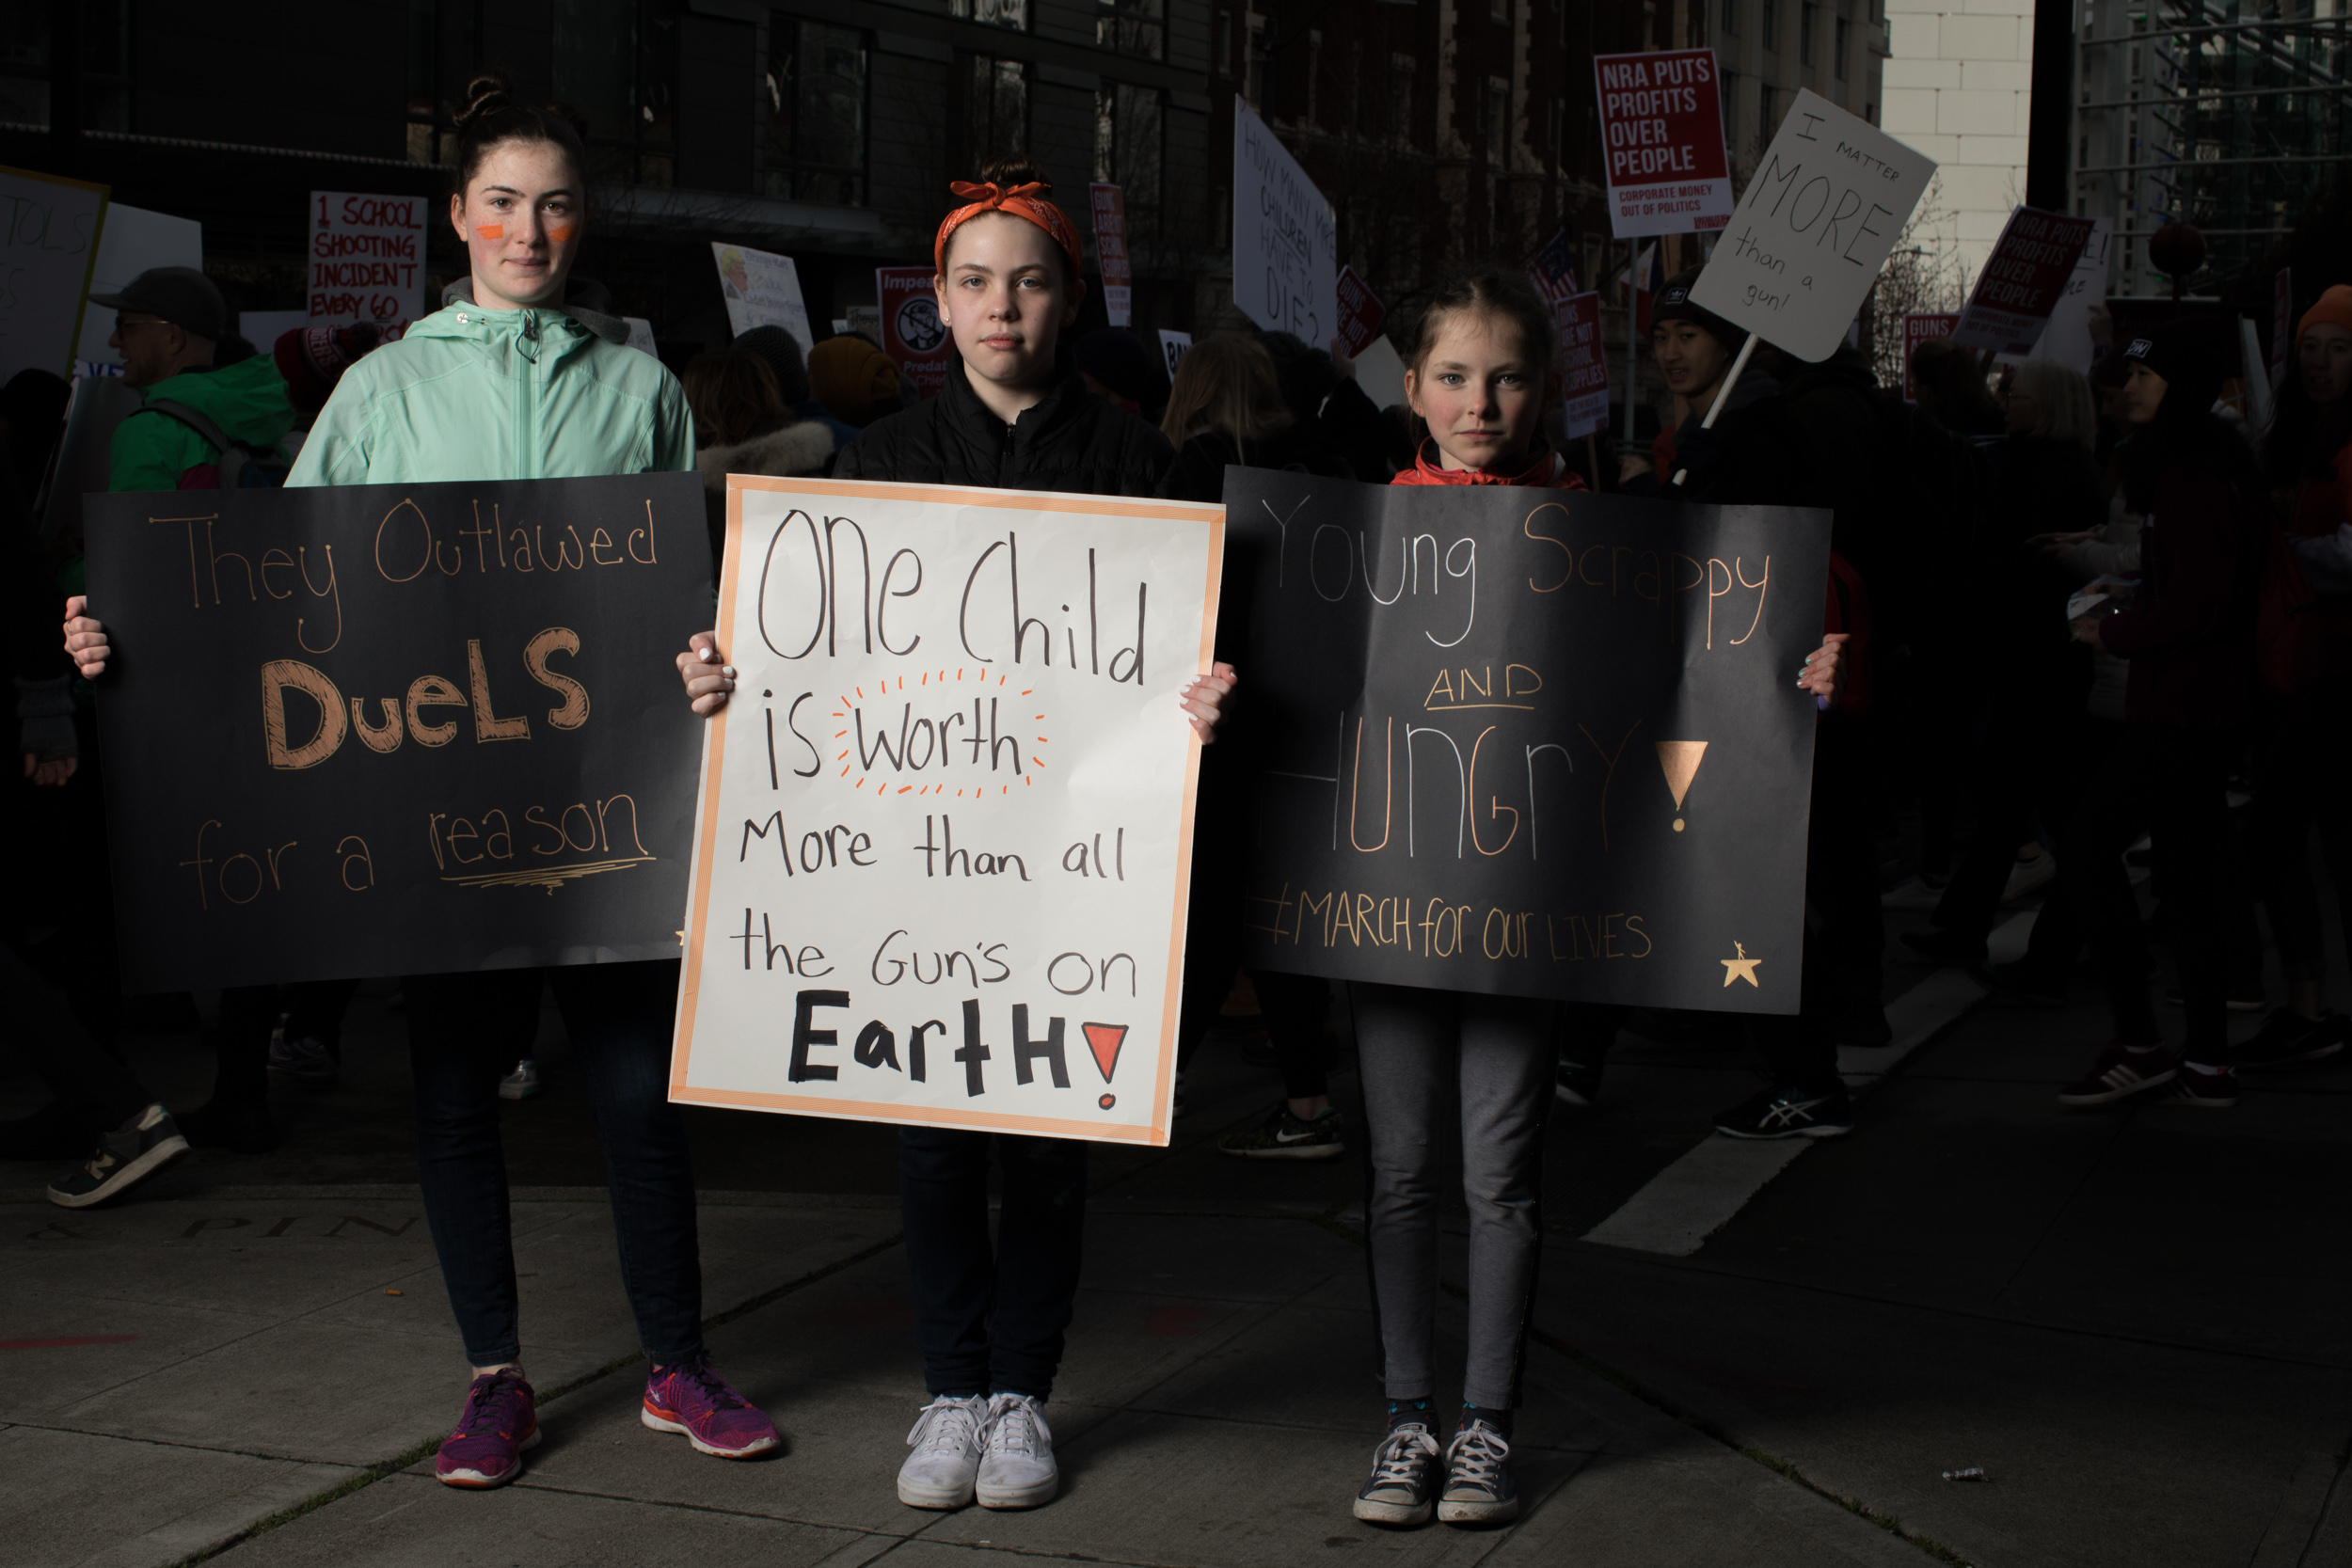 Molly O'Mara, 12, Riley Samuels, 12, and Abigail O'Mara, 9, all of Mercer Island